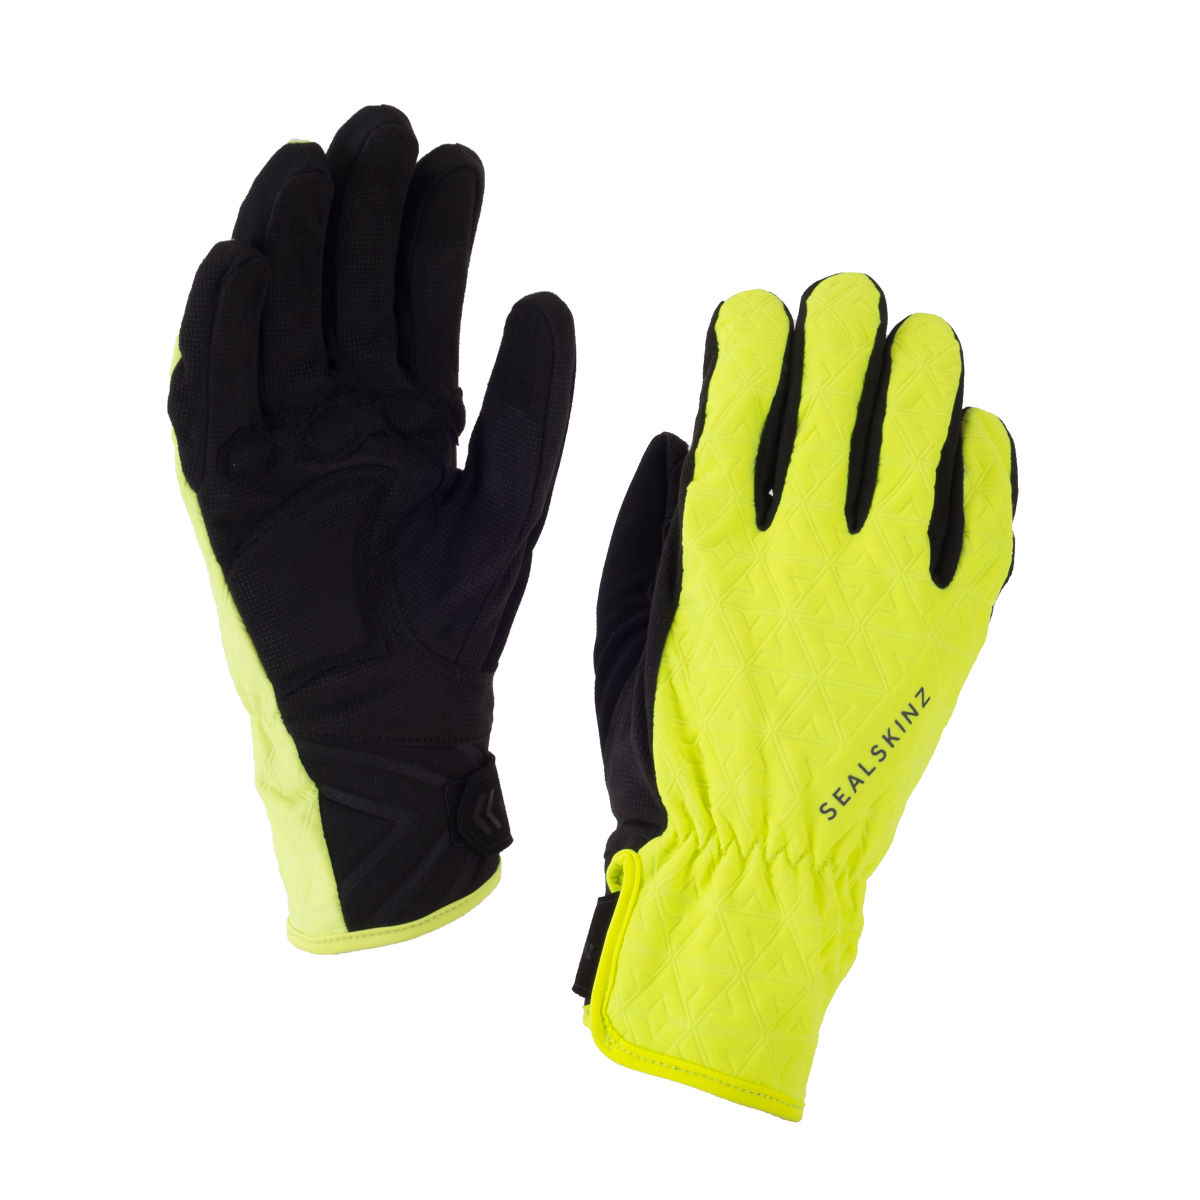 Gants cyclistes Femme SealSkinz All Weather - L Black/Hi Vis Yellow